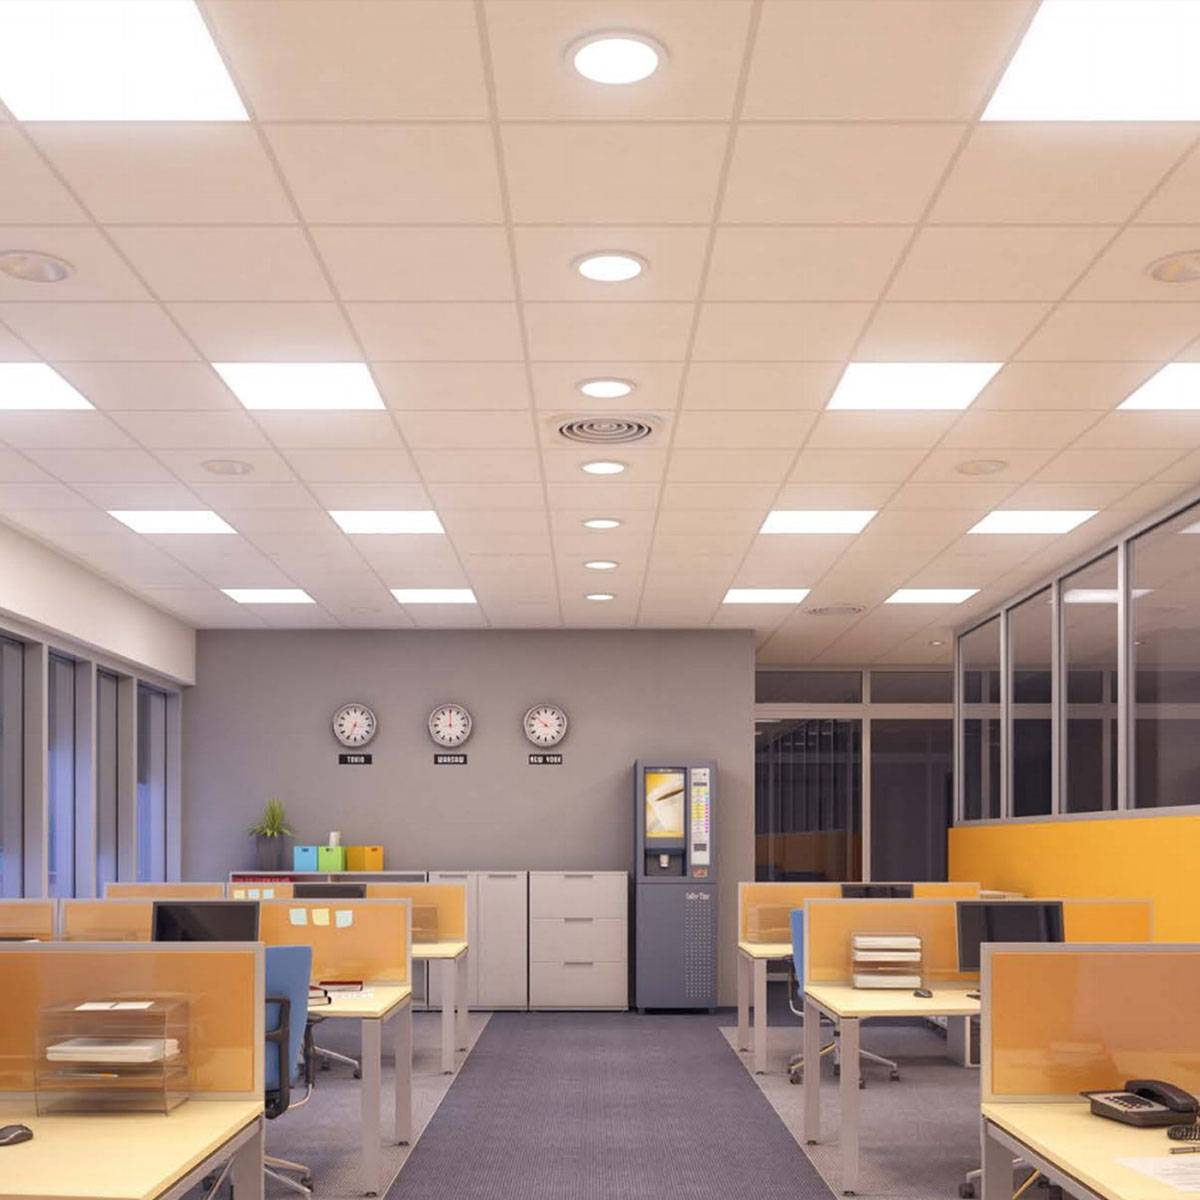 Systeemplafond Led Verlichting Proline I Led Paneel 32w 60x60cm Project Verlichting